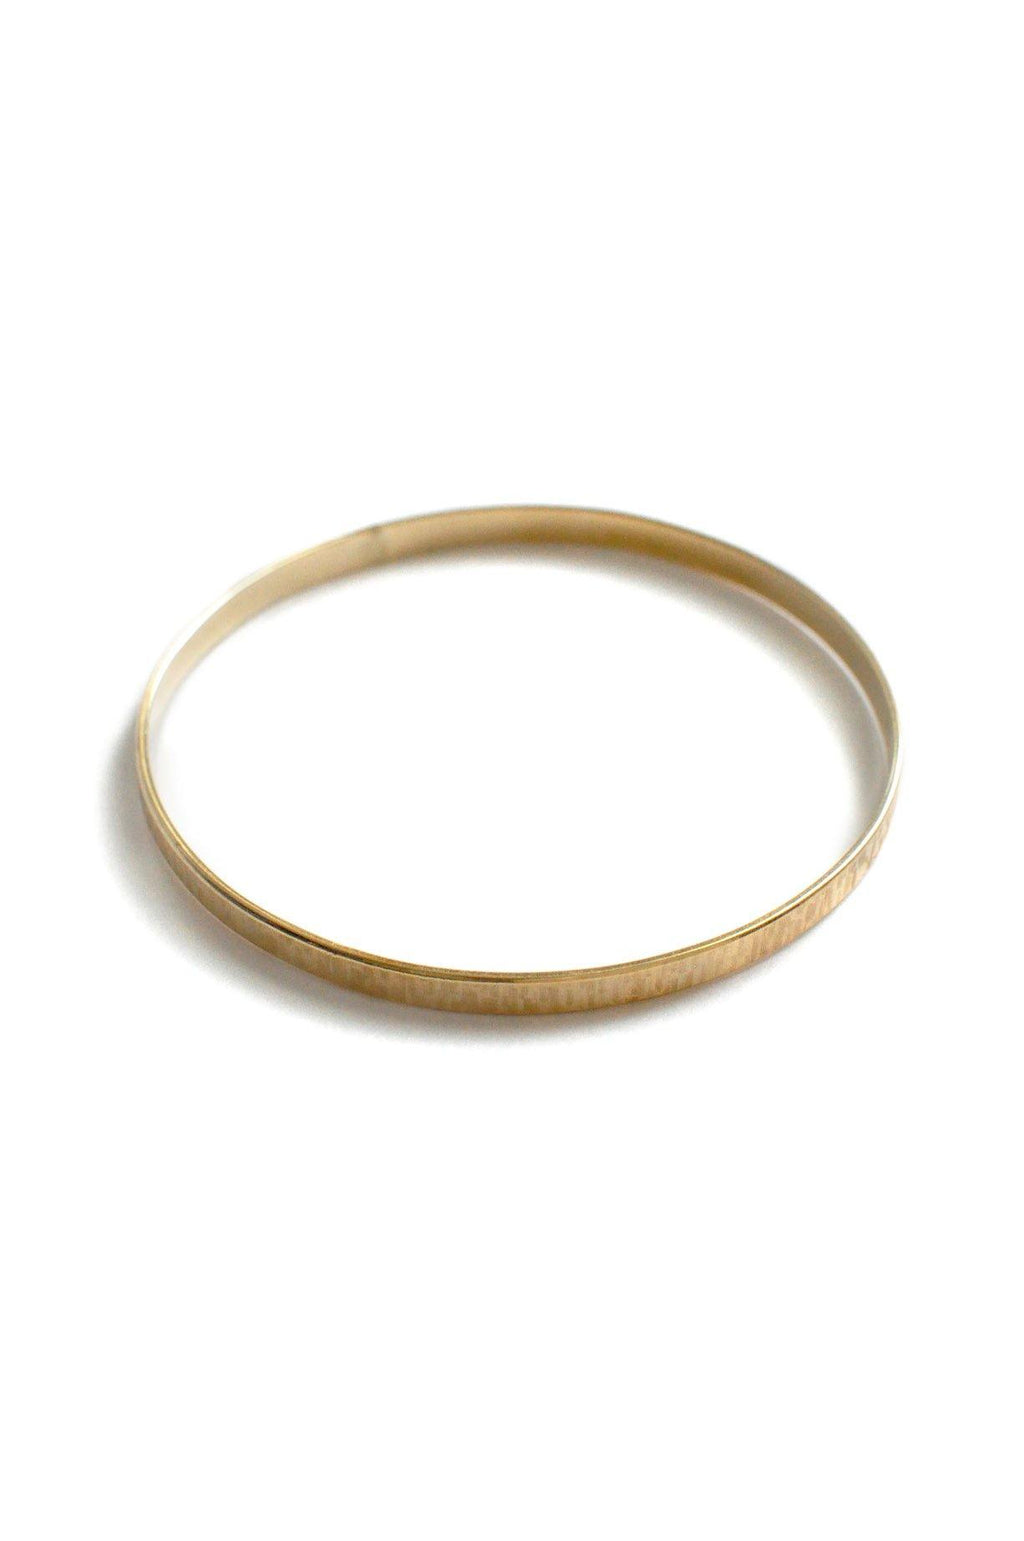 Dainty Etched Bangle Bracelet